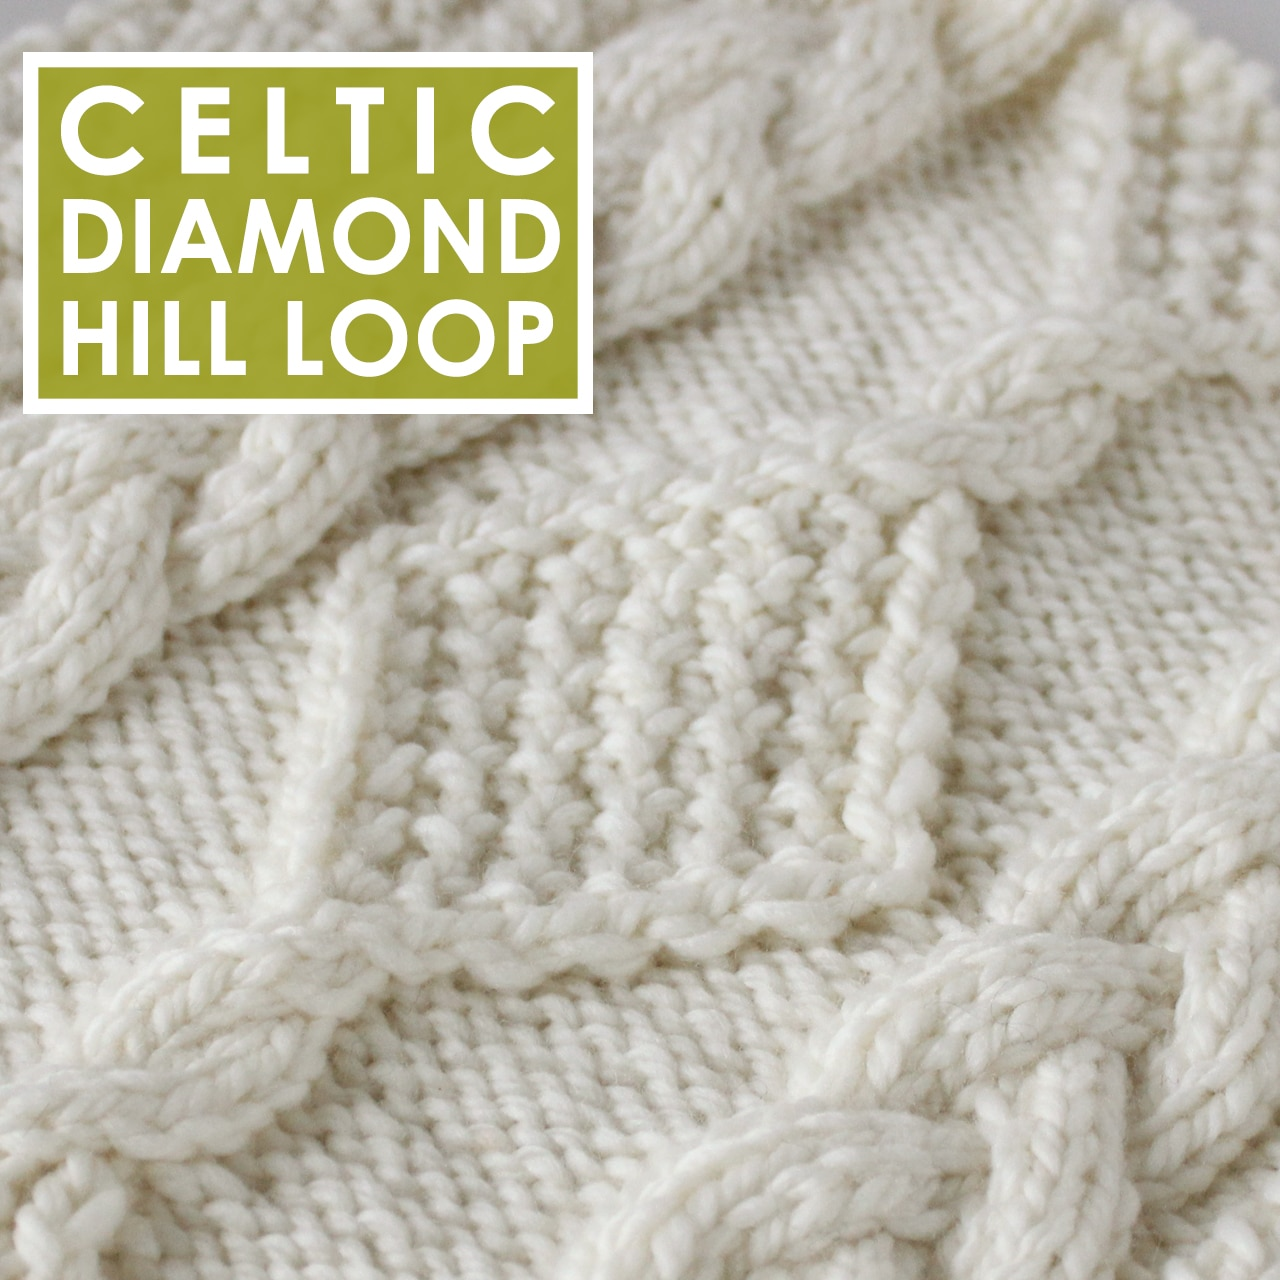 Diamond Hill Loop Celtic Cable with free knitting pattern an